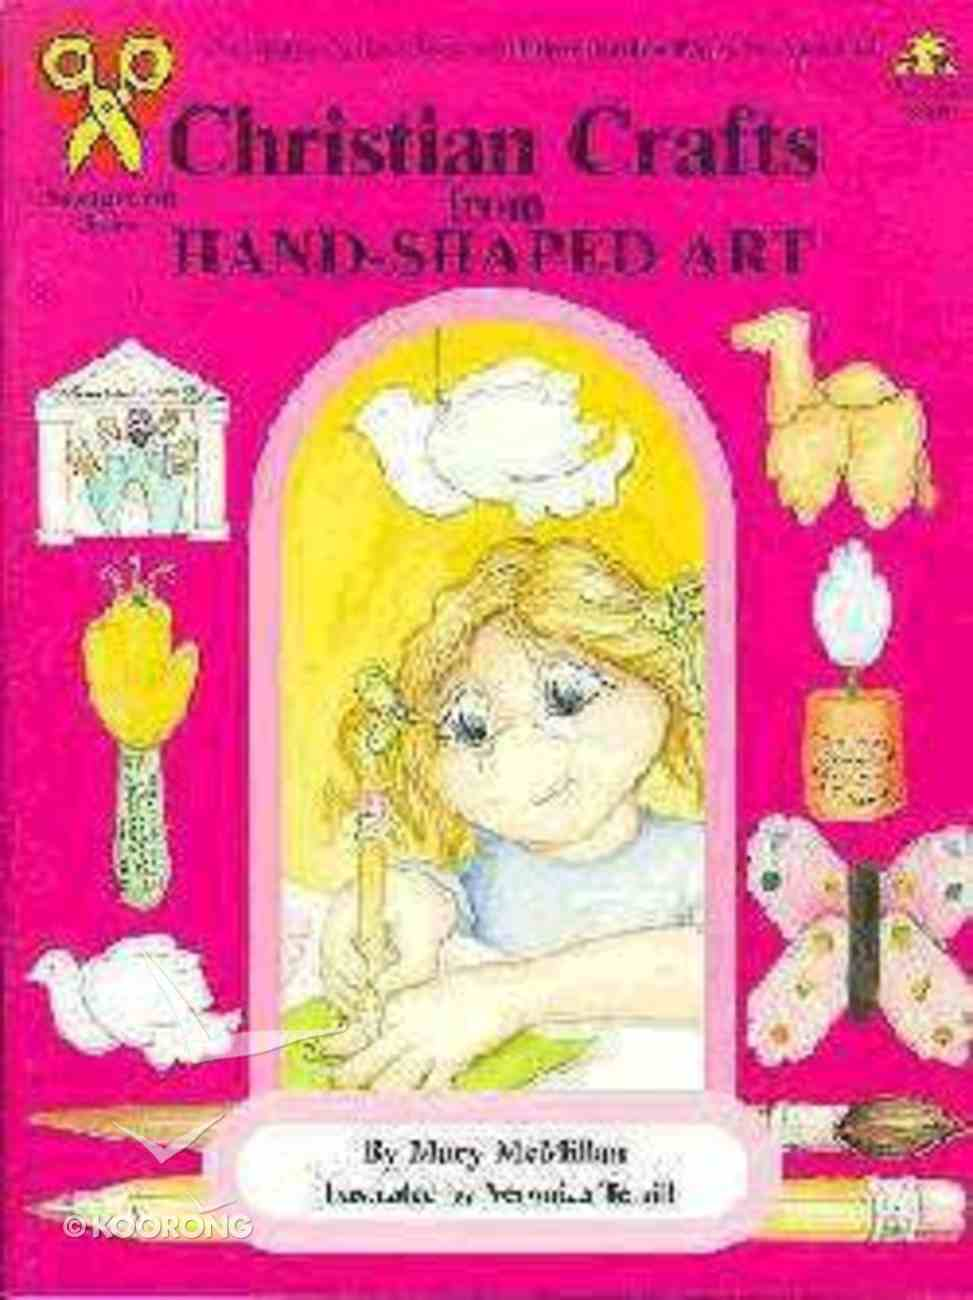 Christian Crafts From Hand-Shaped Art Paperback